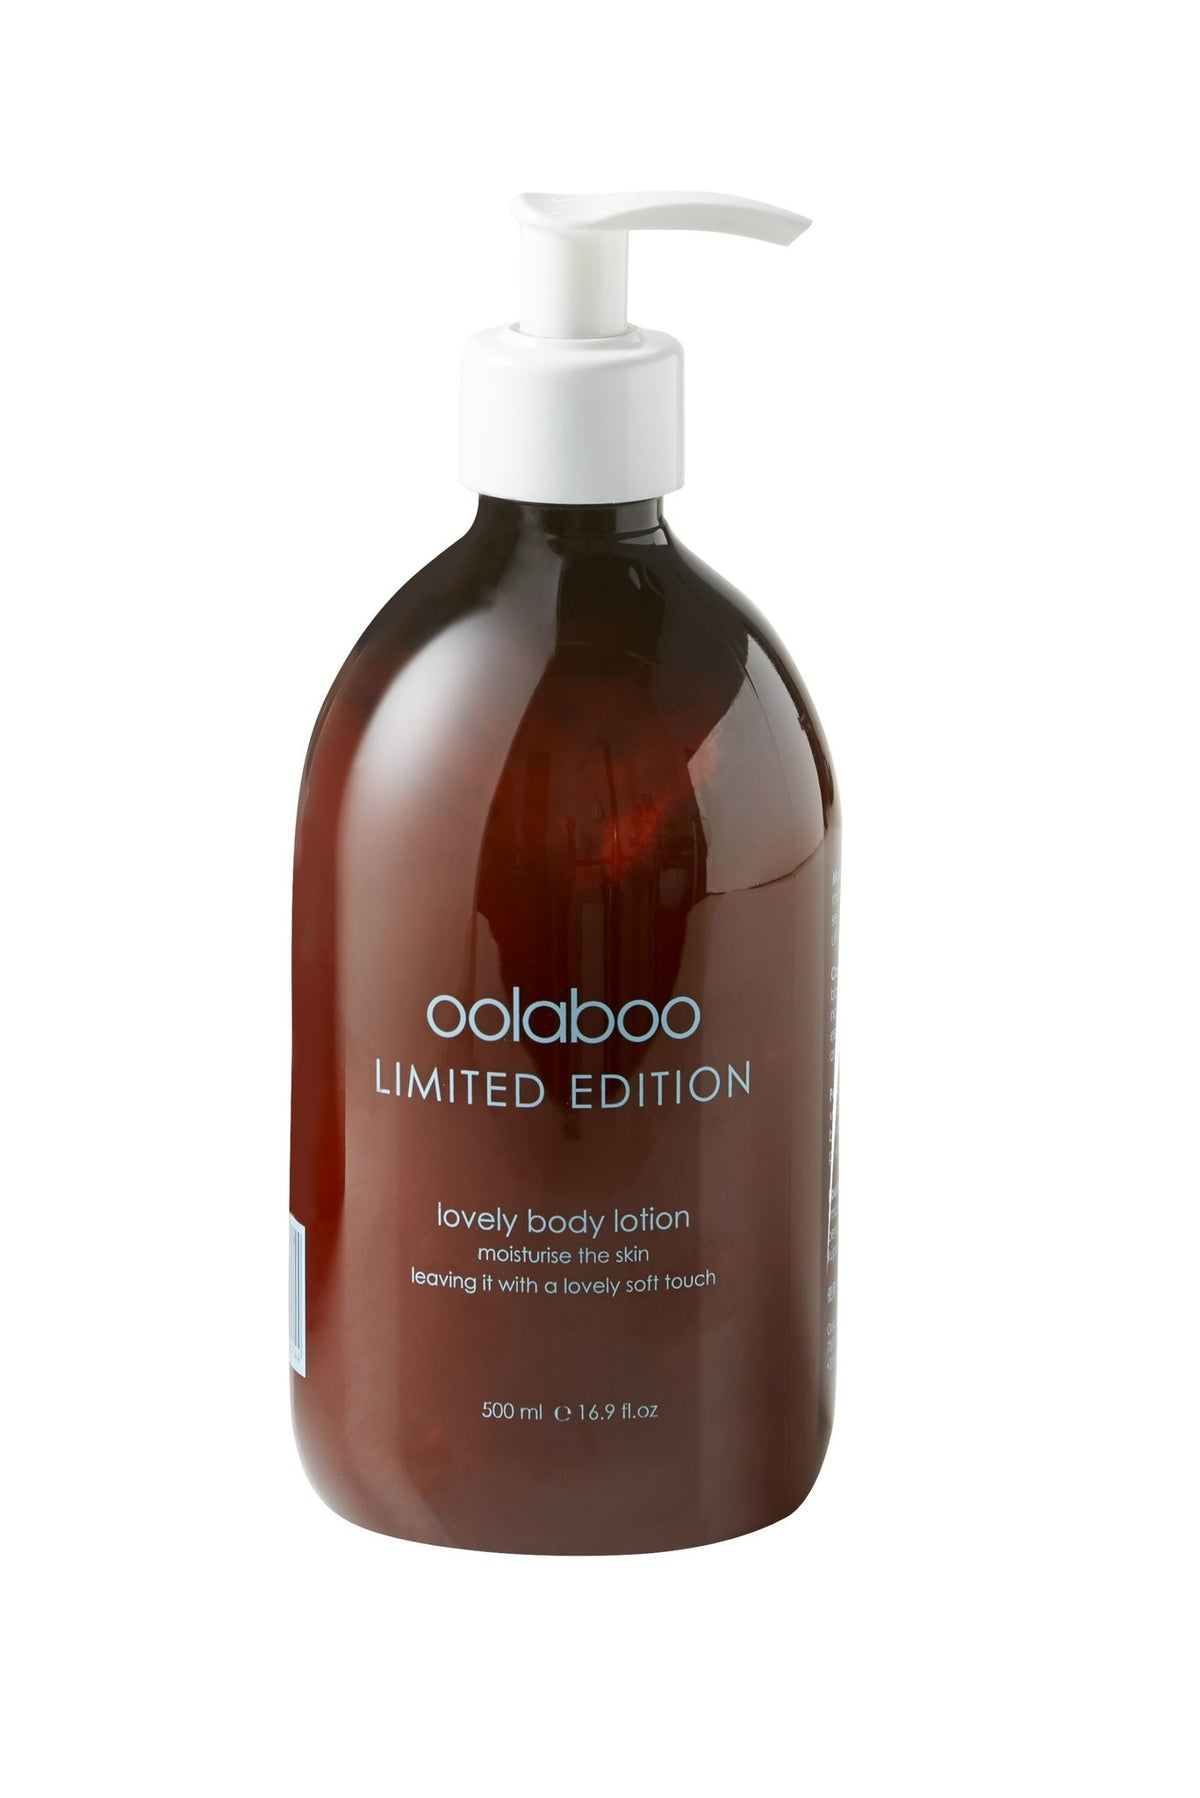 Oolaboo limited edition set / Christmas gift box included delicious bath & shower gel + lovely body lotion